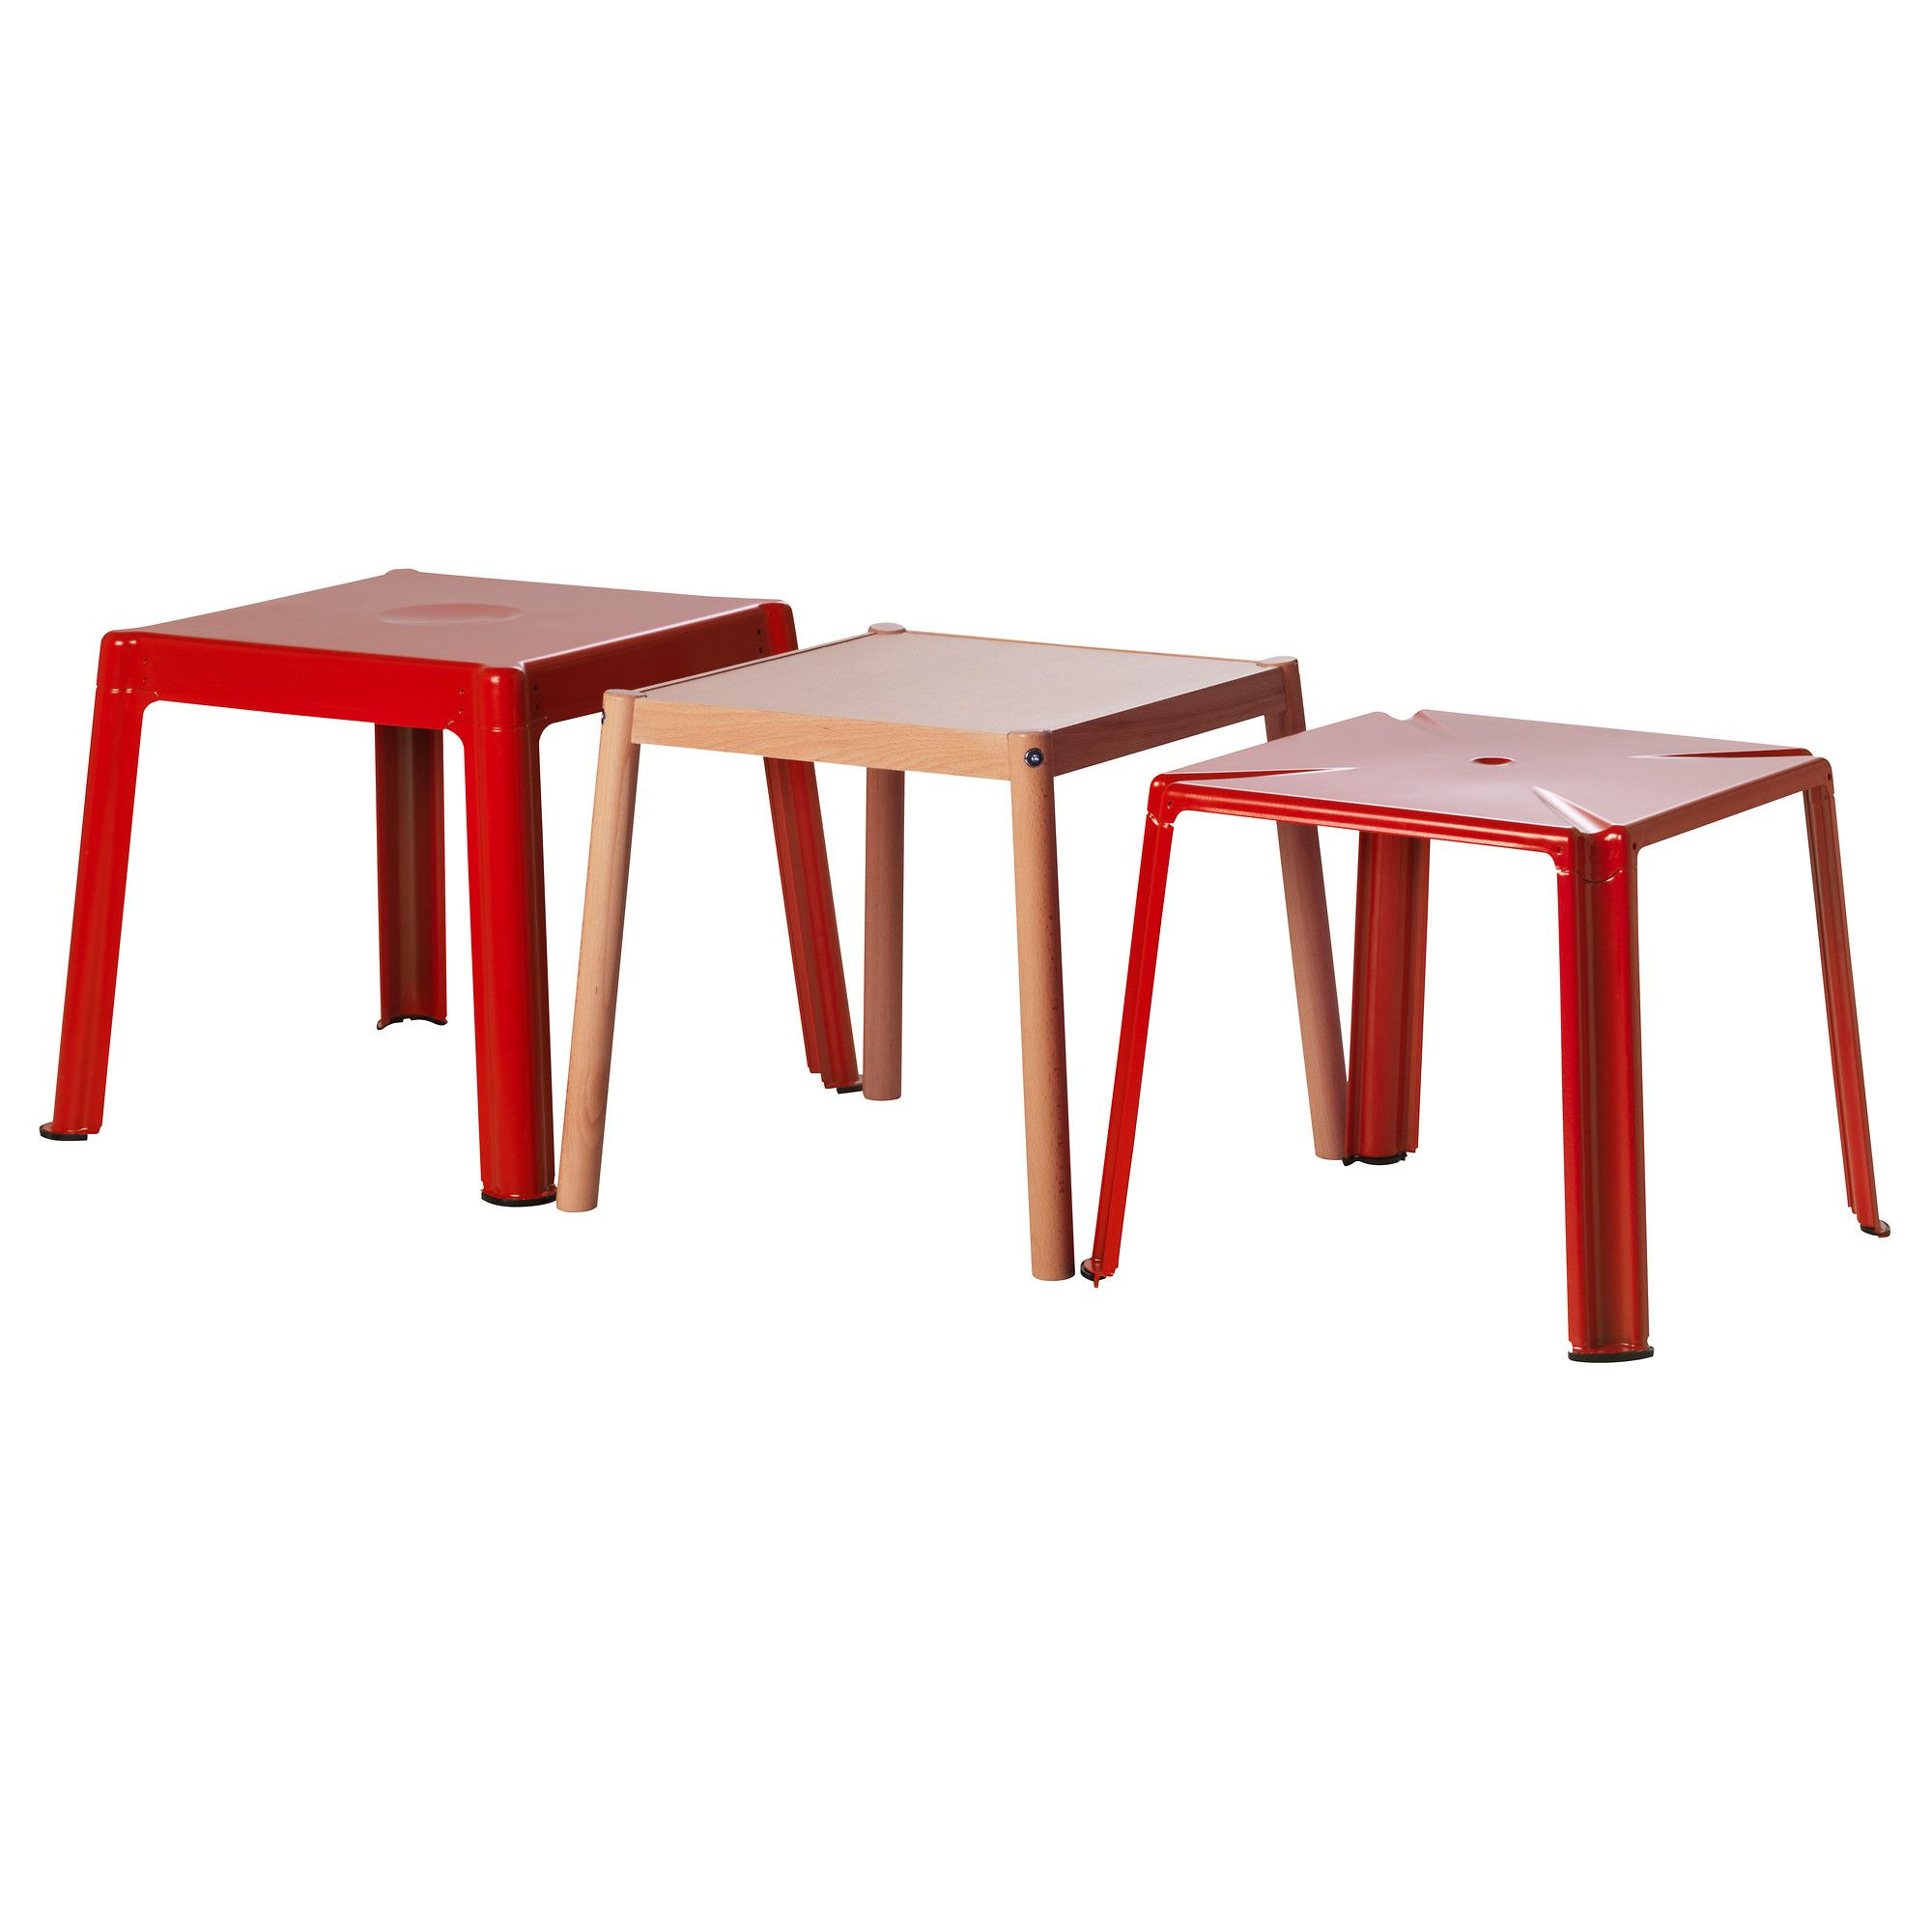 Home movie theater side tables ikea ps 2012 nesting tables set of 3 ikea ps 2012 nesting tables set of beech red length 19 width 19 height 16 length 50 cm width 50 cm height 42 cm watchthetrailerfo